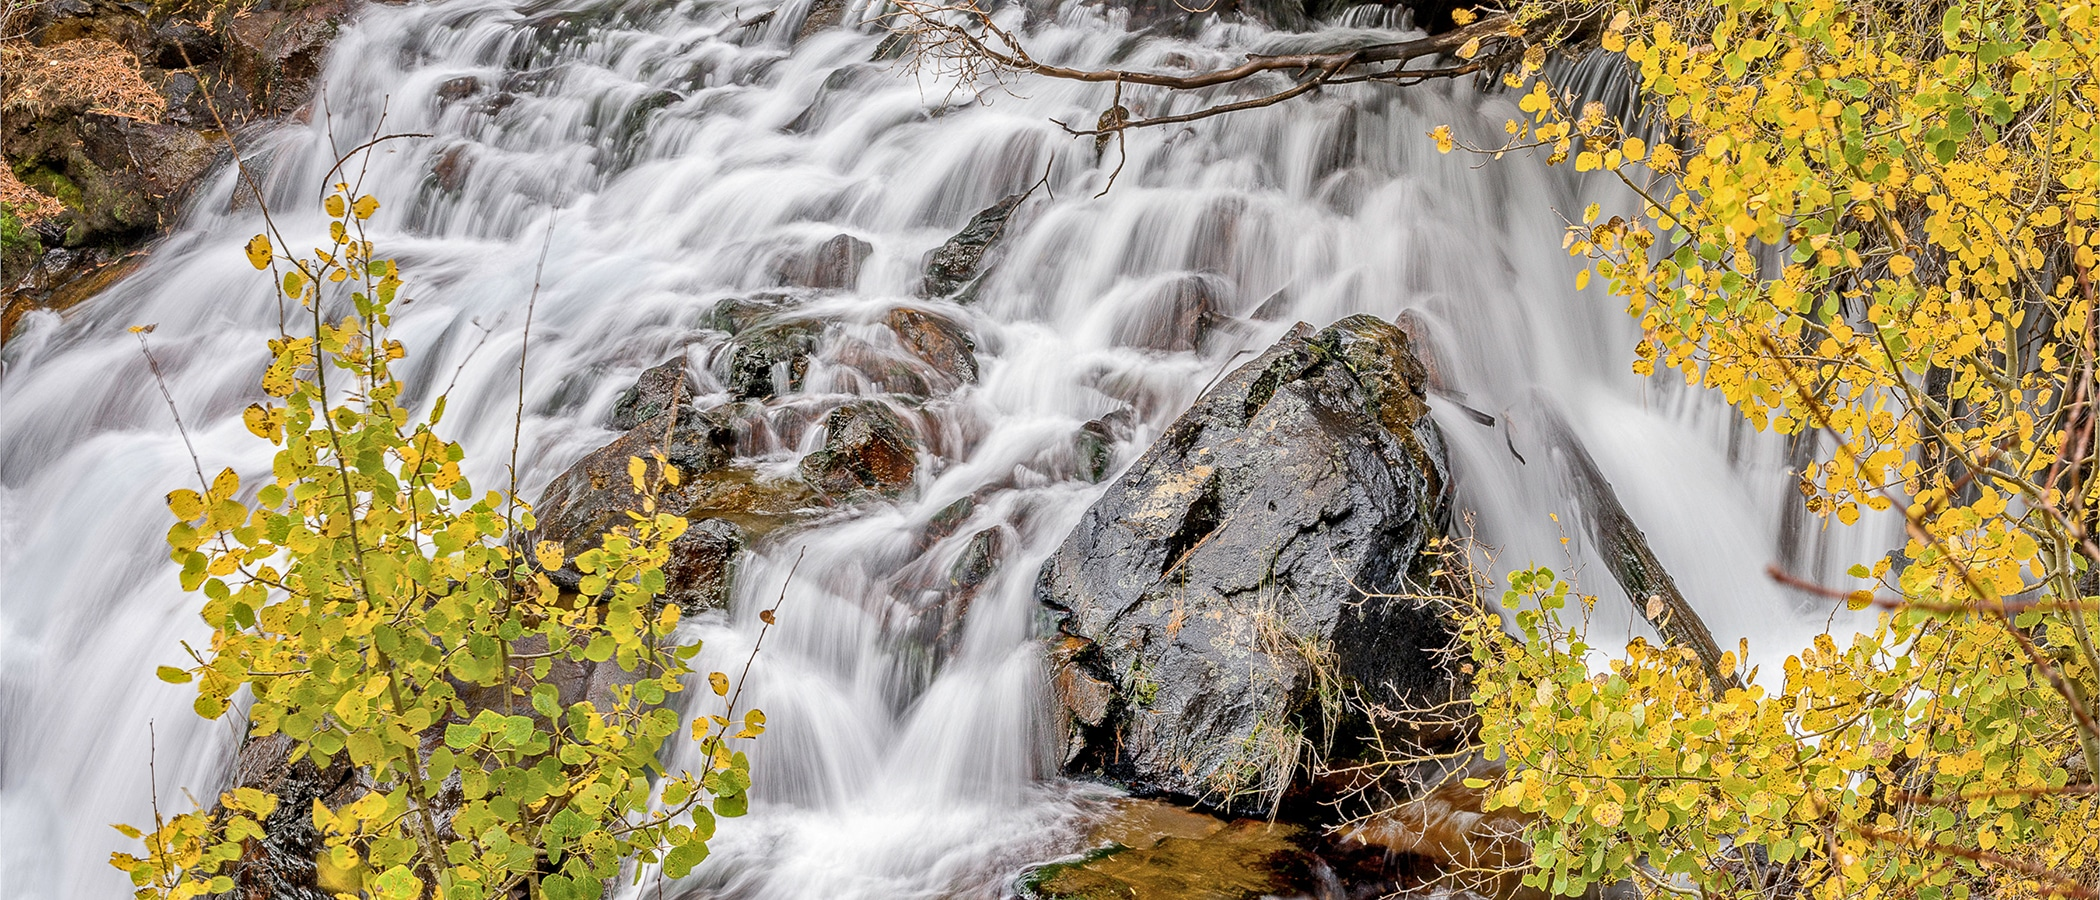 White water rushes down a rocky falls with yellow aspens in front.